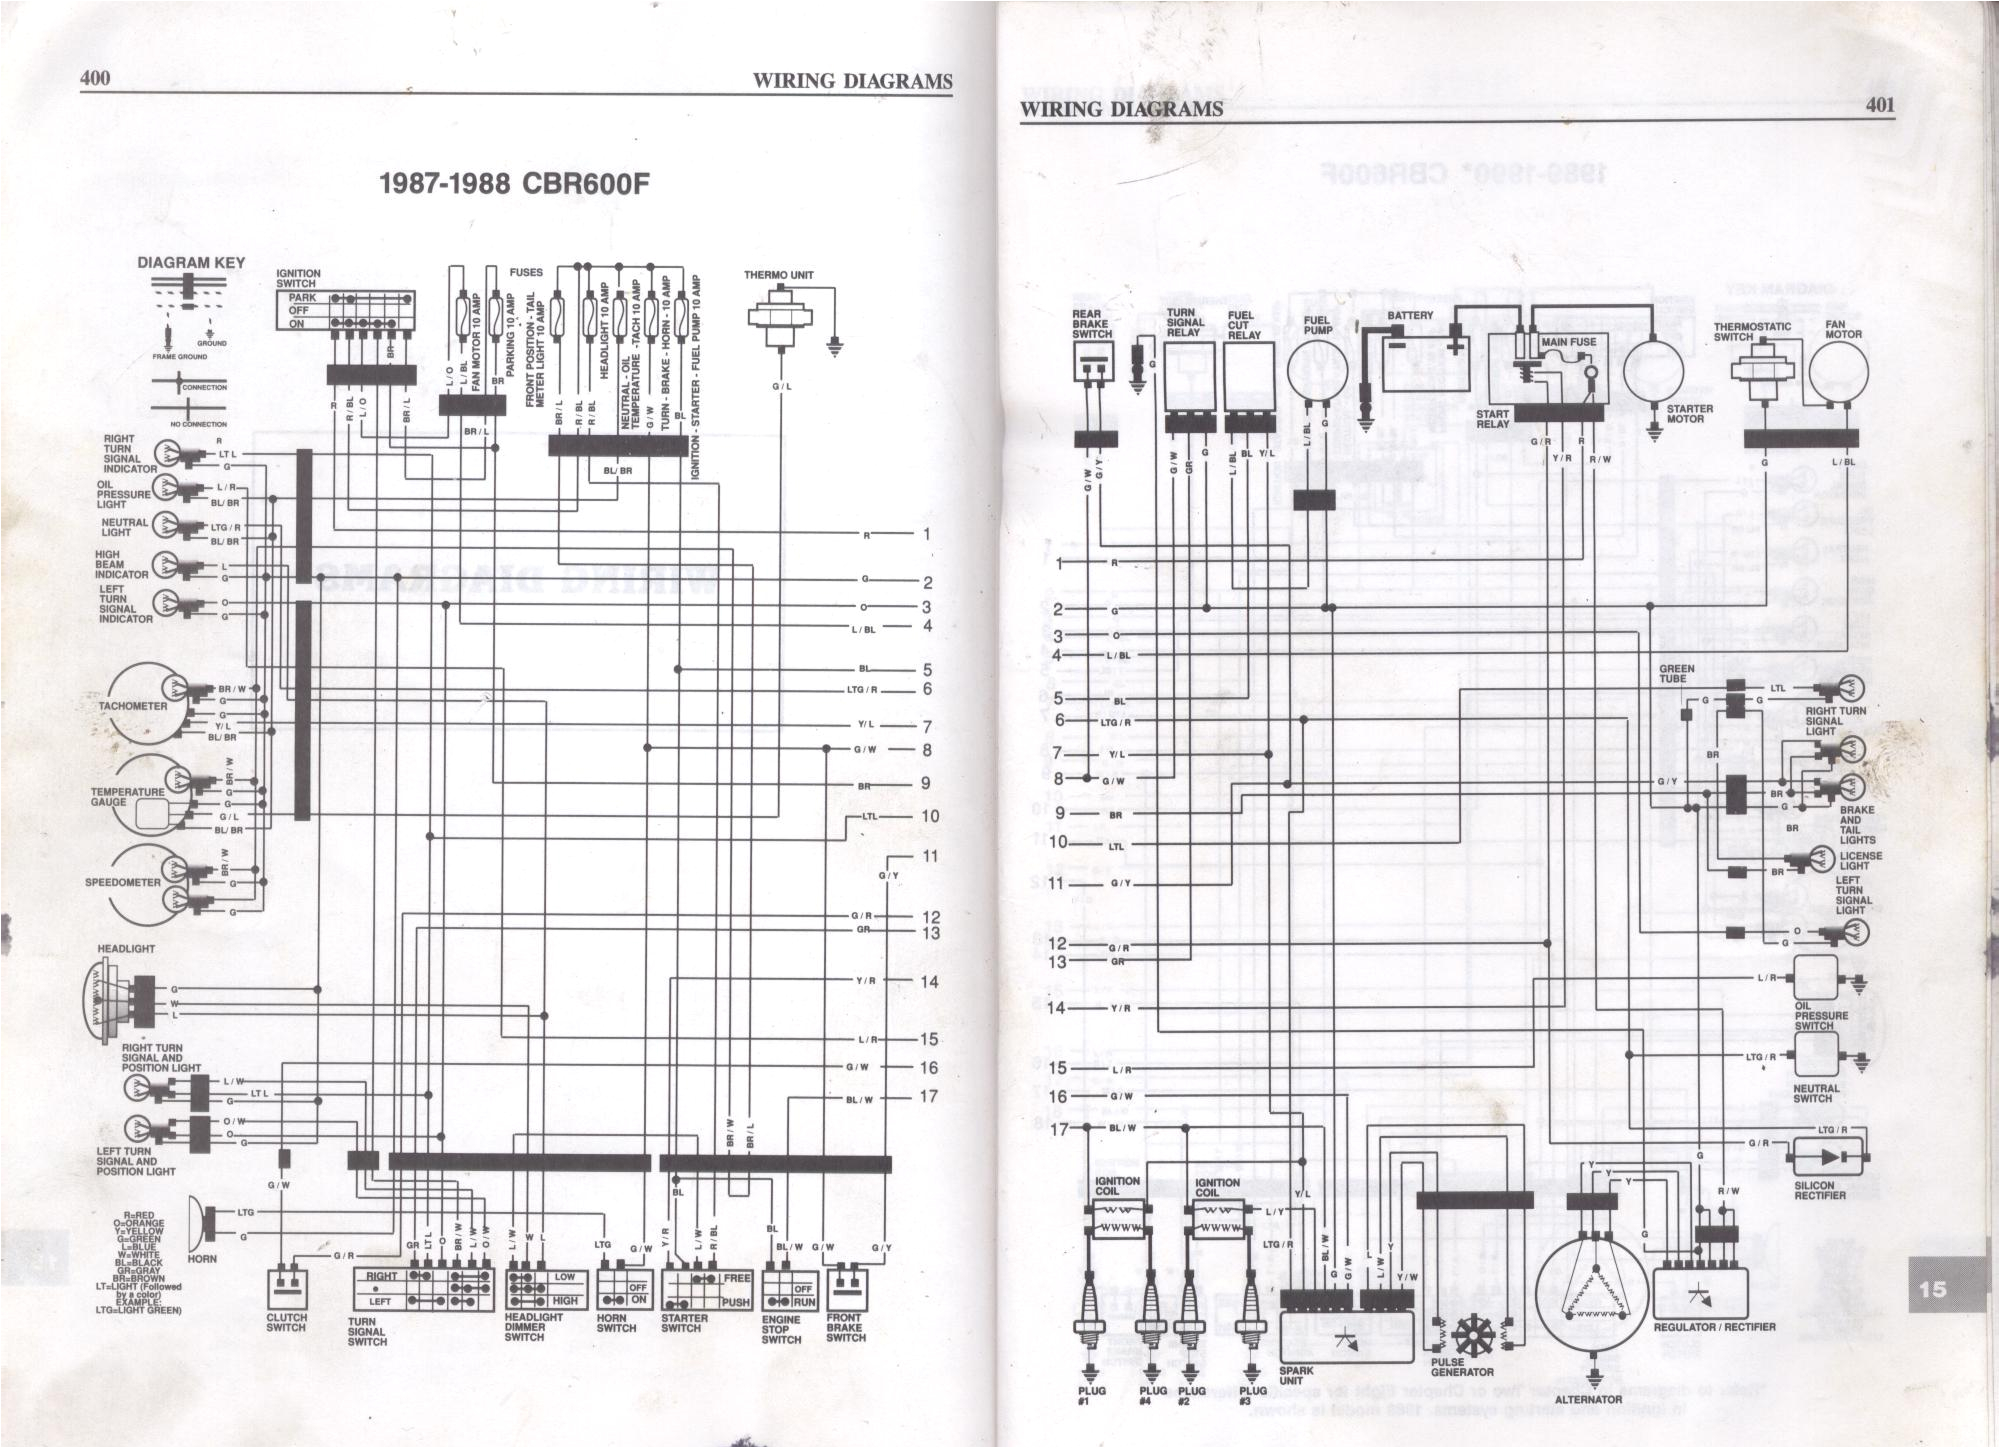 honda cbr600f wiring diagram wiring diagrams for honda cbr600f wiring diagram honda cbr600f wiring diagram